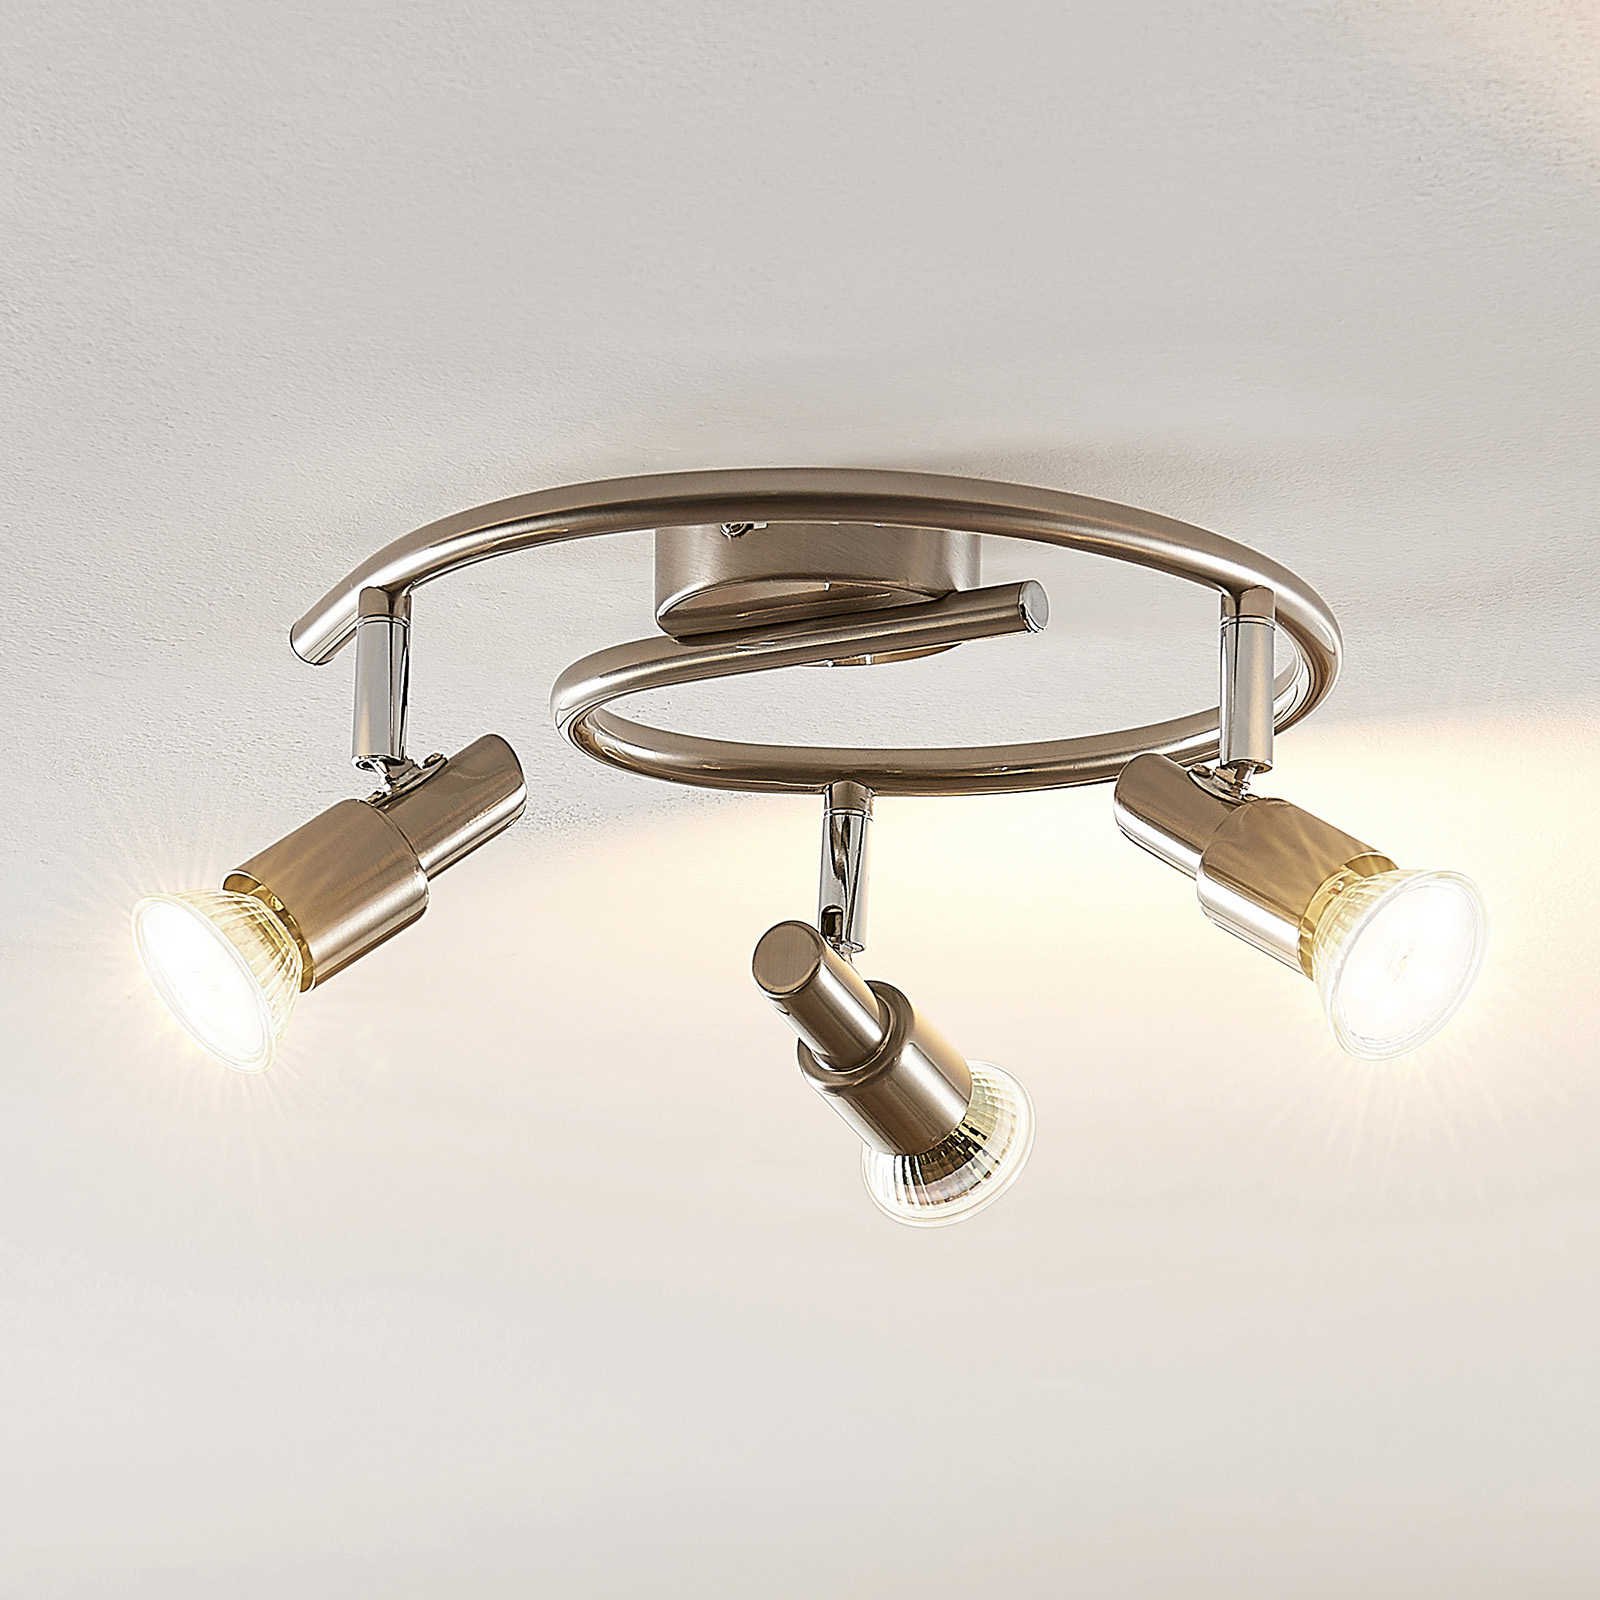 ELC Farida plafonnier LED nickel, 3 lampes